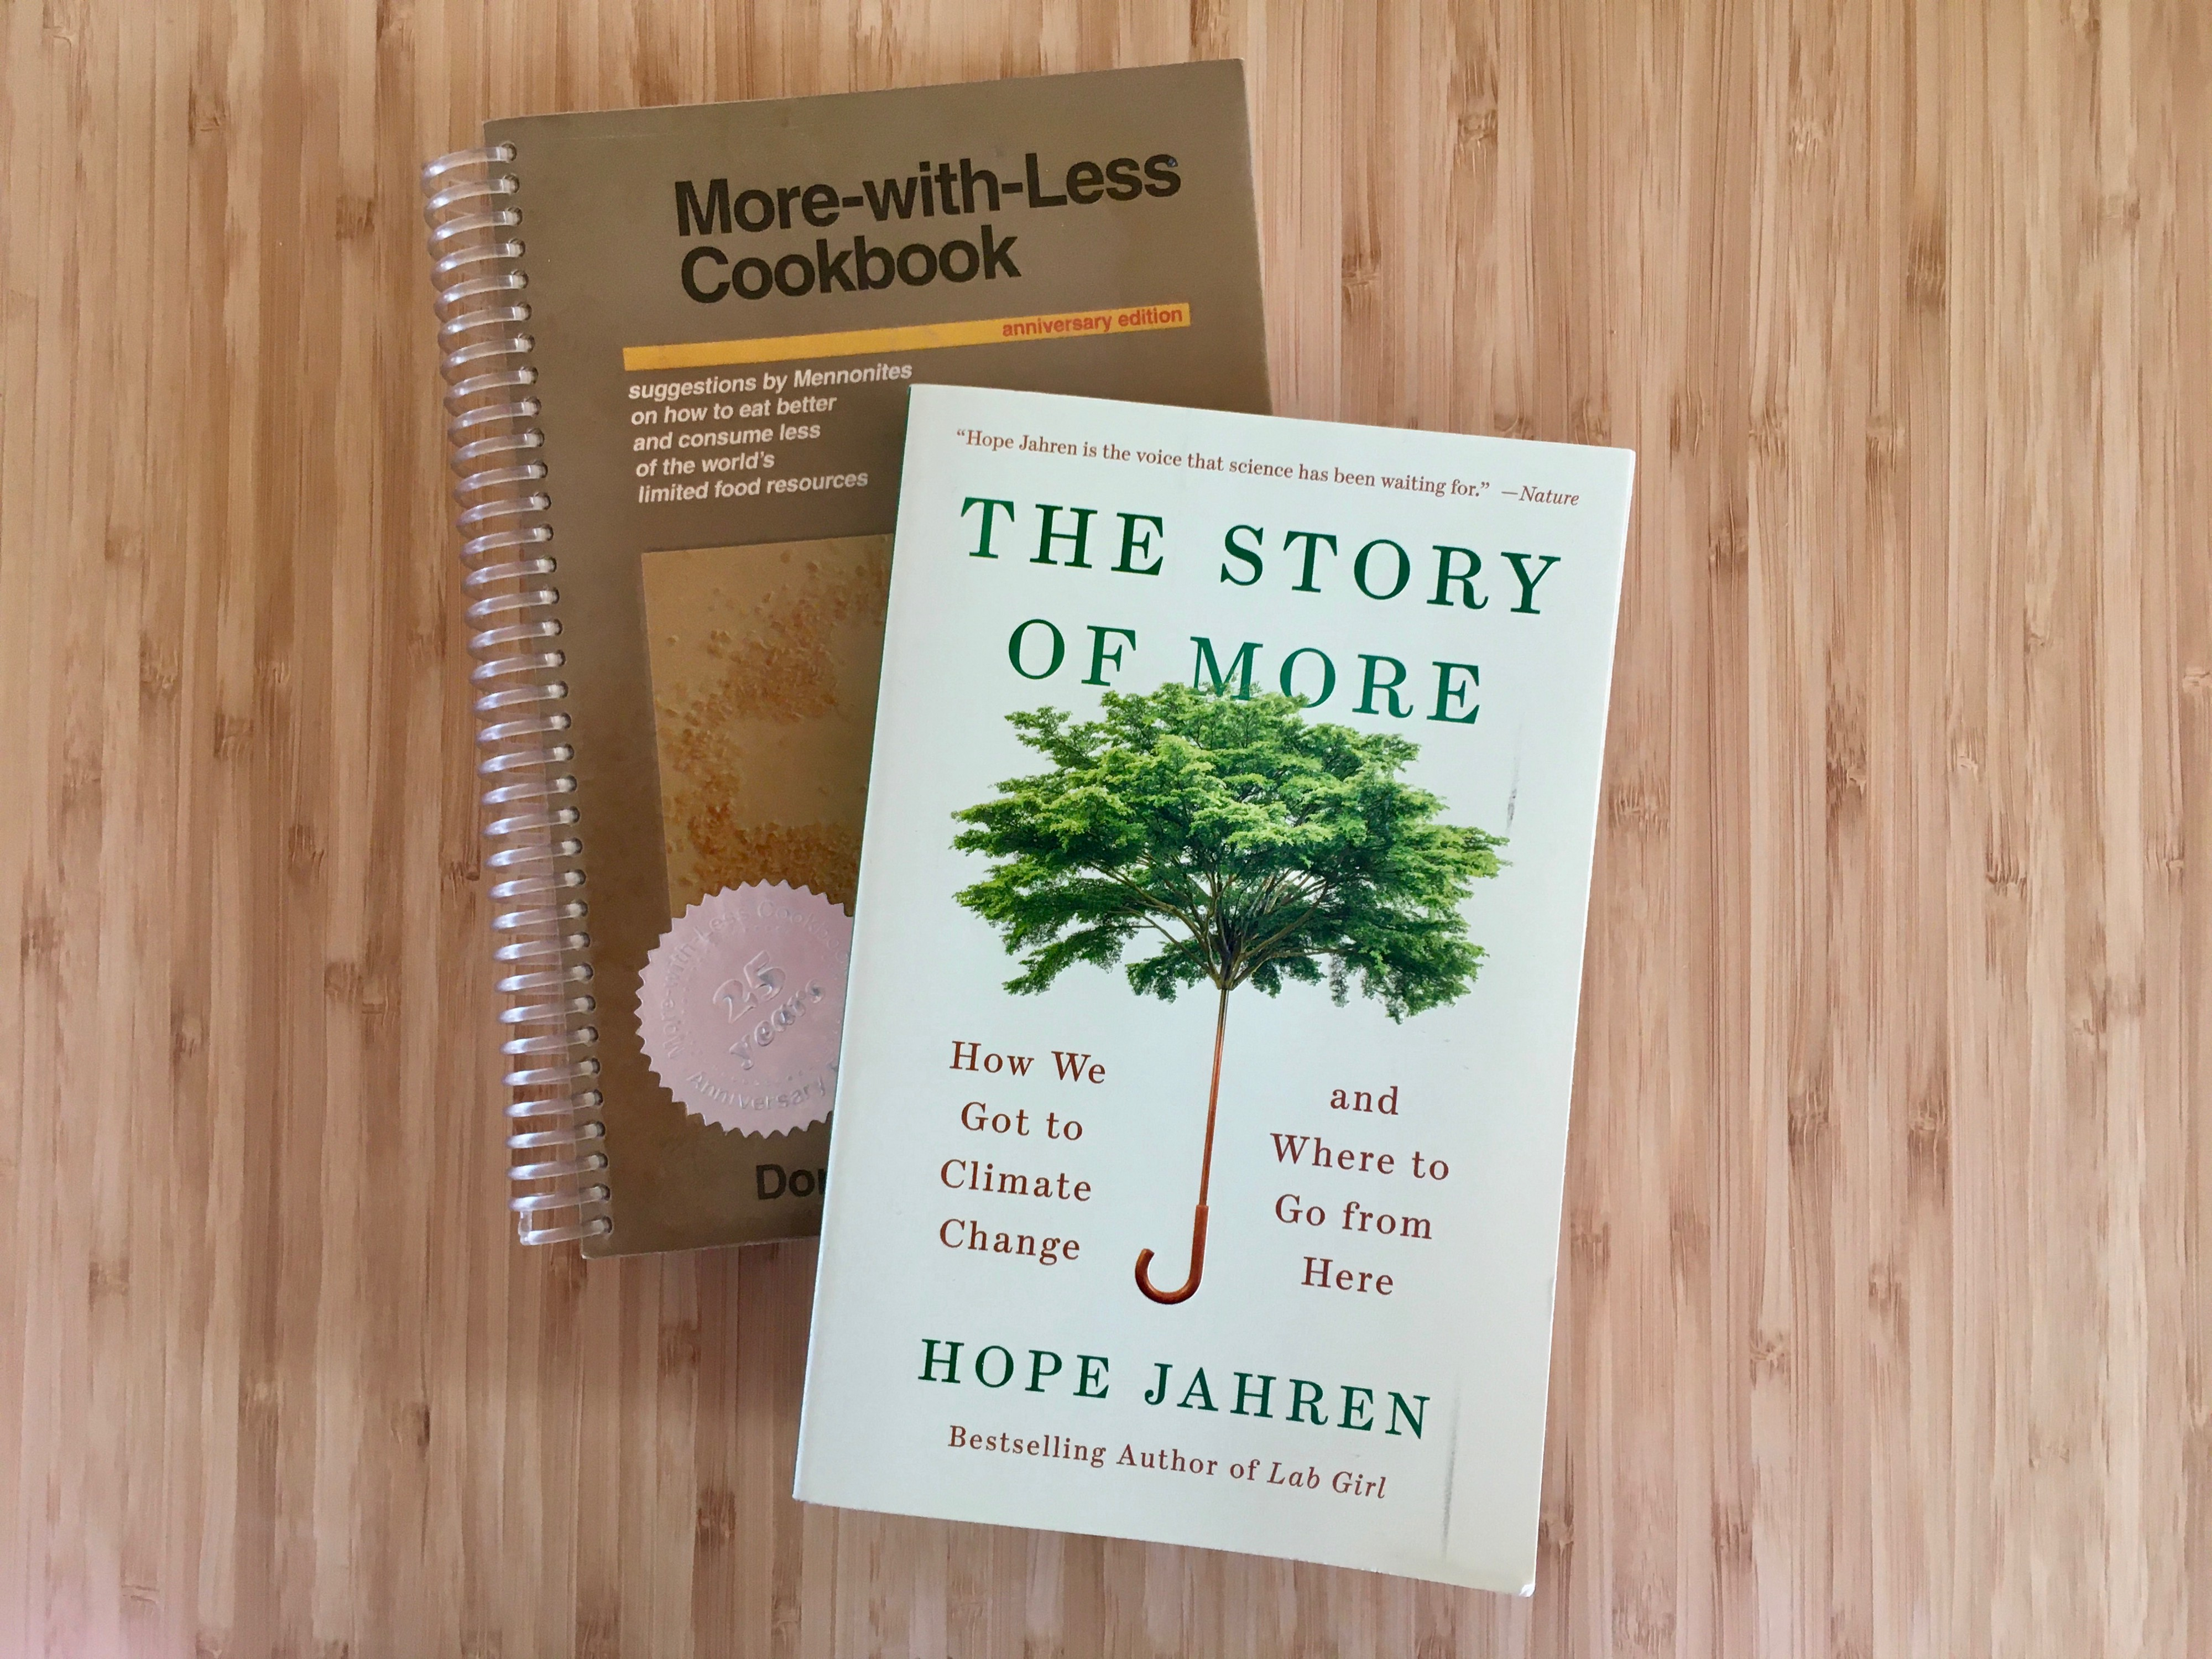 Copies of the More-with-Less cookbook and The Story of More